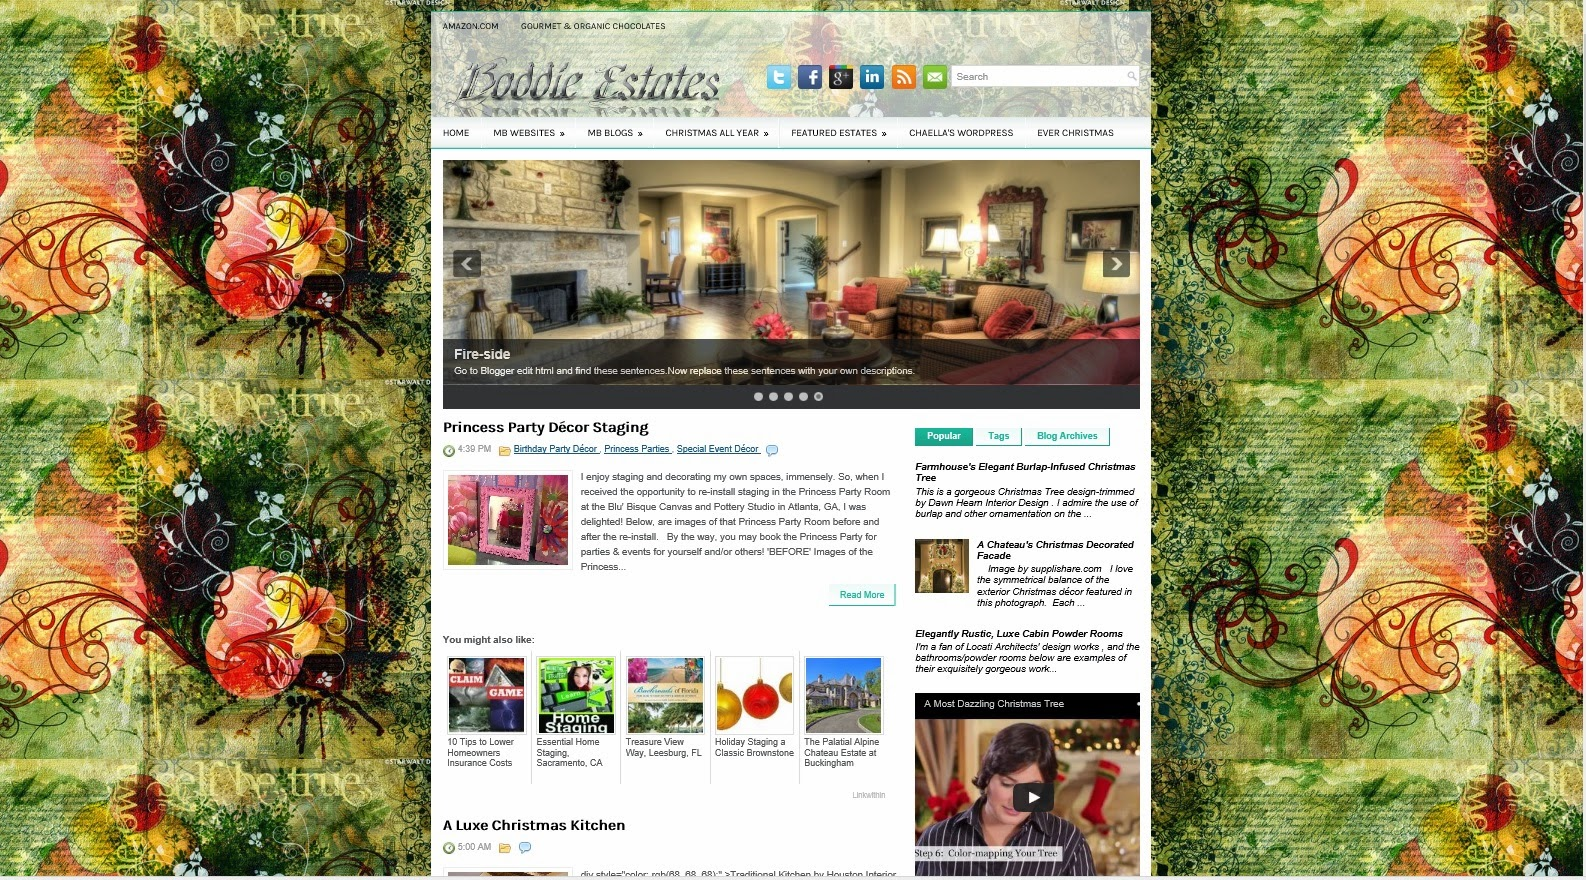 Boddie Estates Real Estate Topics blog